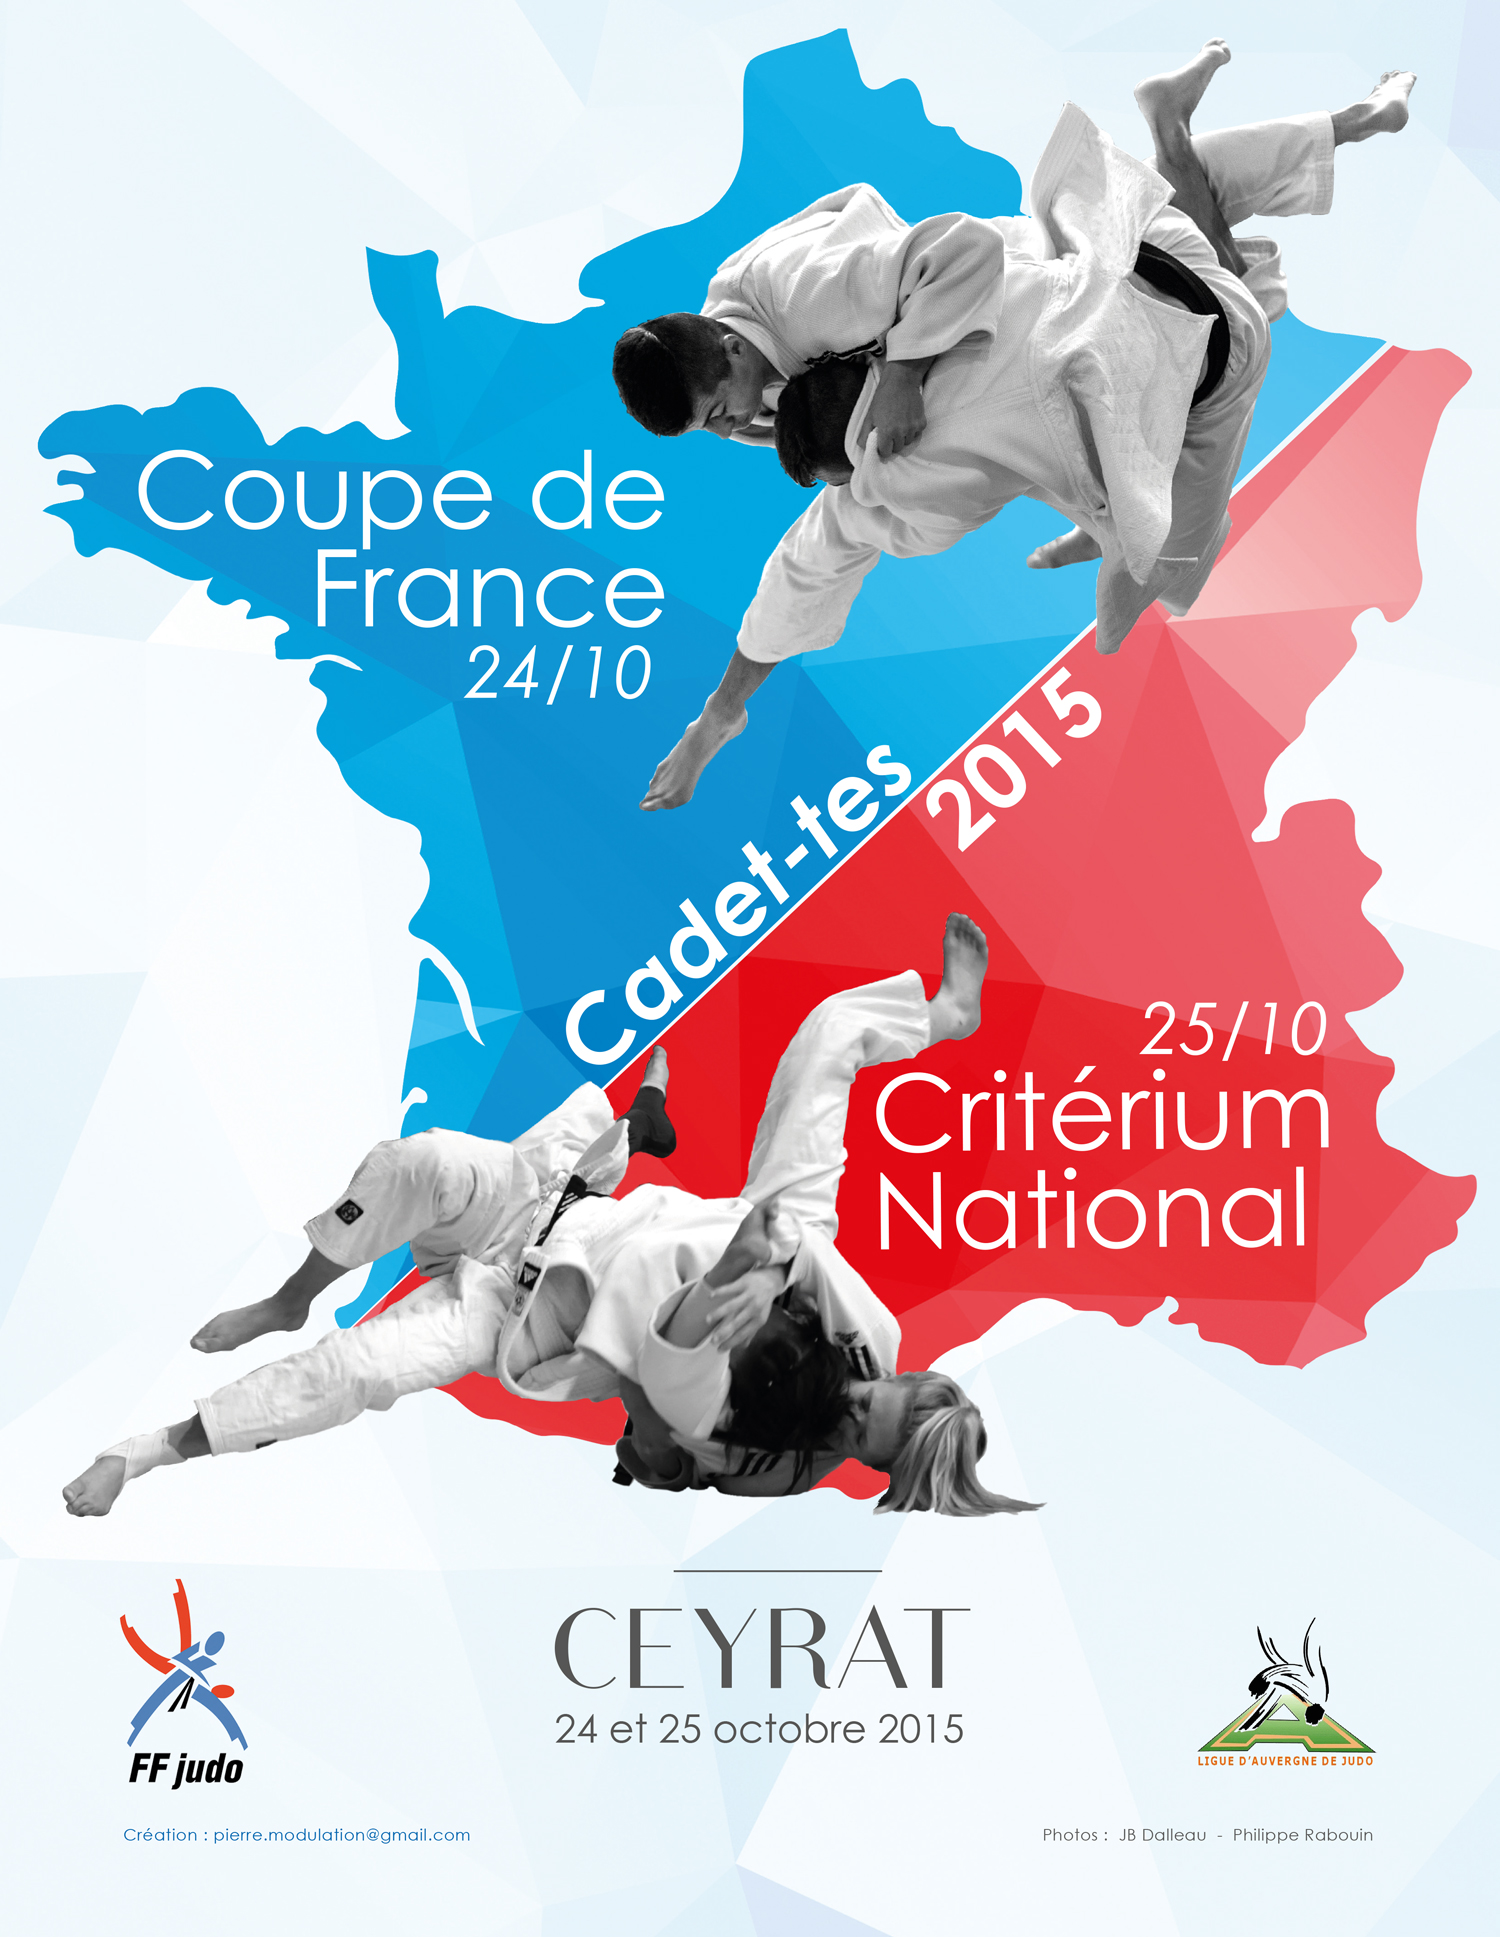 coupe de france et criterium national cadets cadettes 24 et 25 octobre 2015 ceyrat ligue. Black Bedroom Furniture Sets. Home Design Ideas